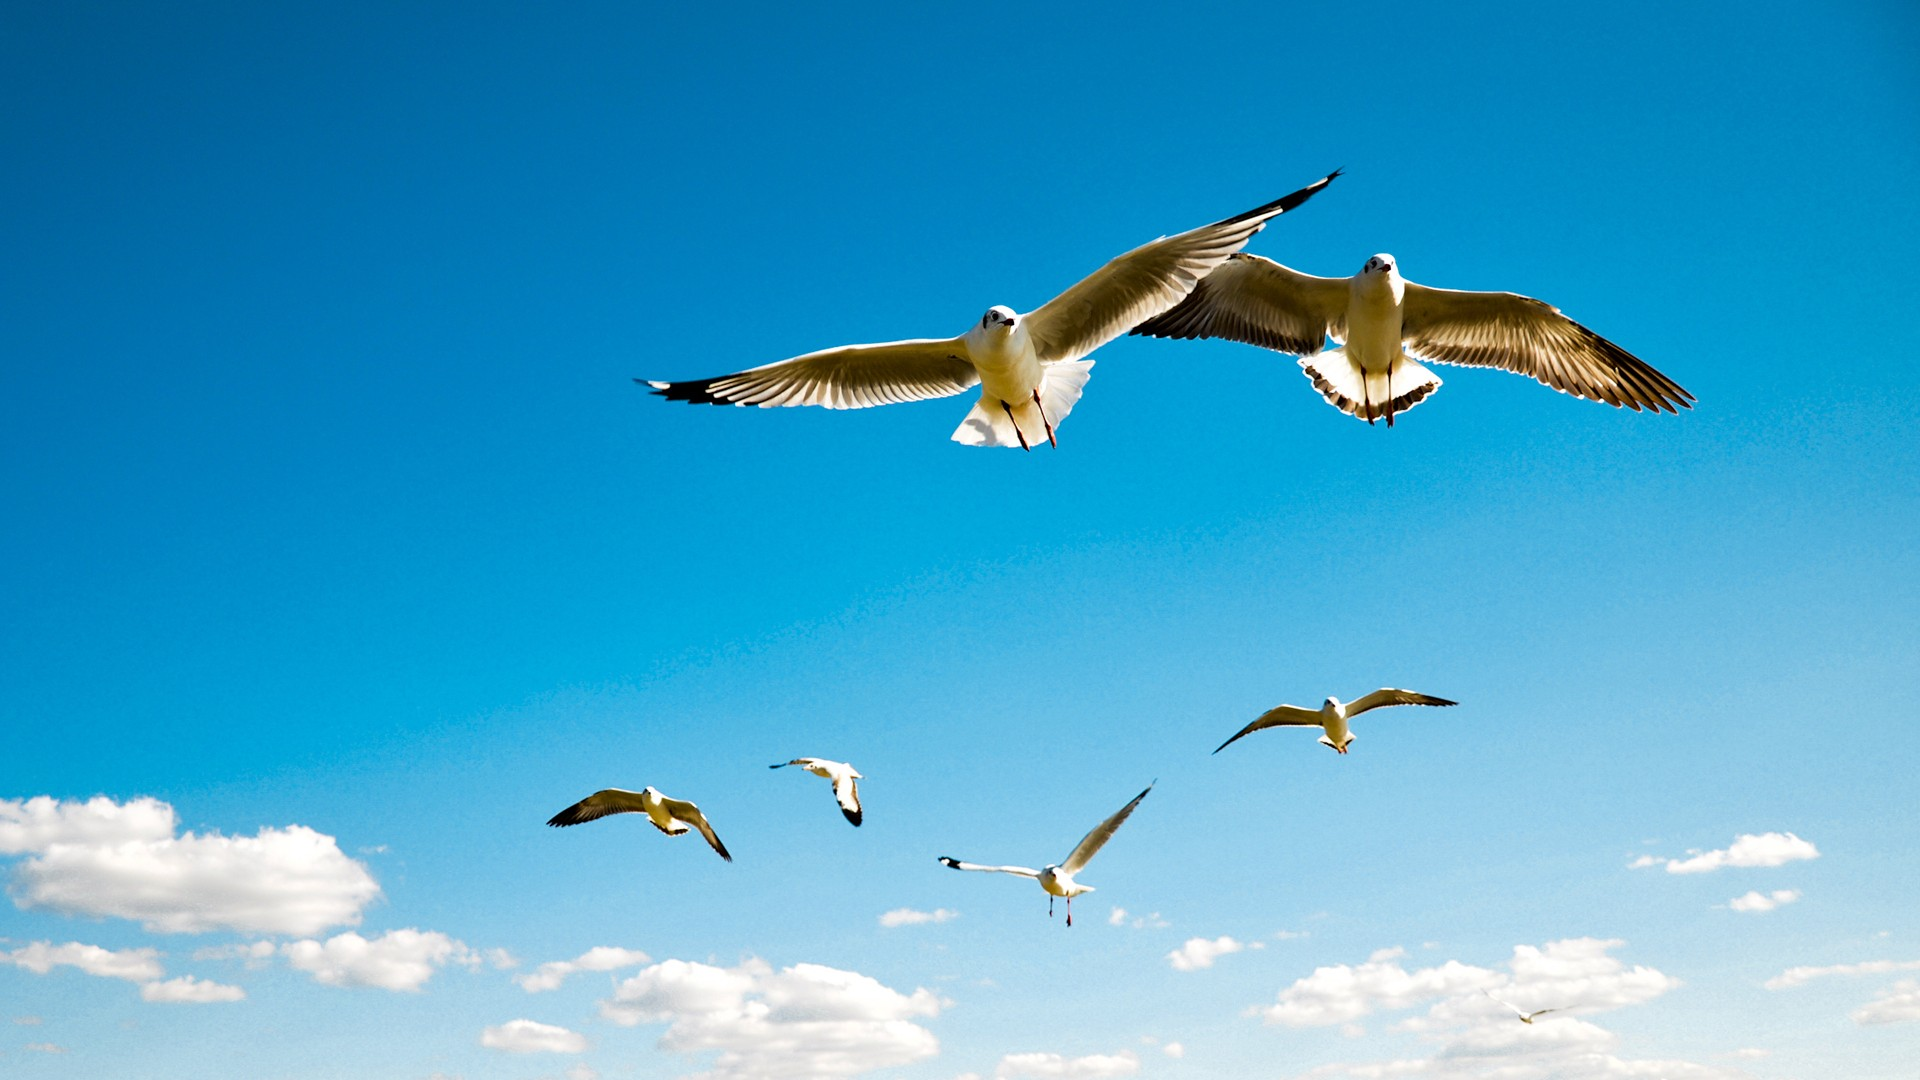 seagulls wallpapers hd